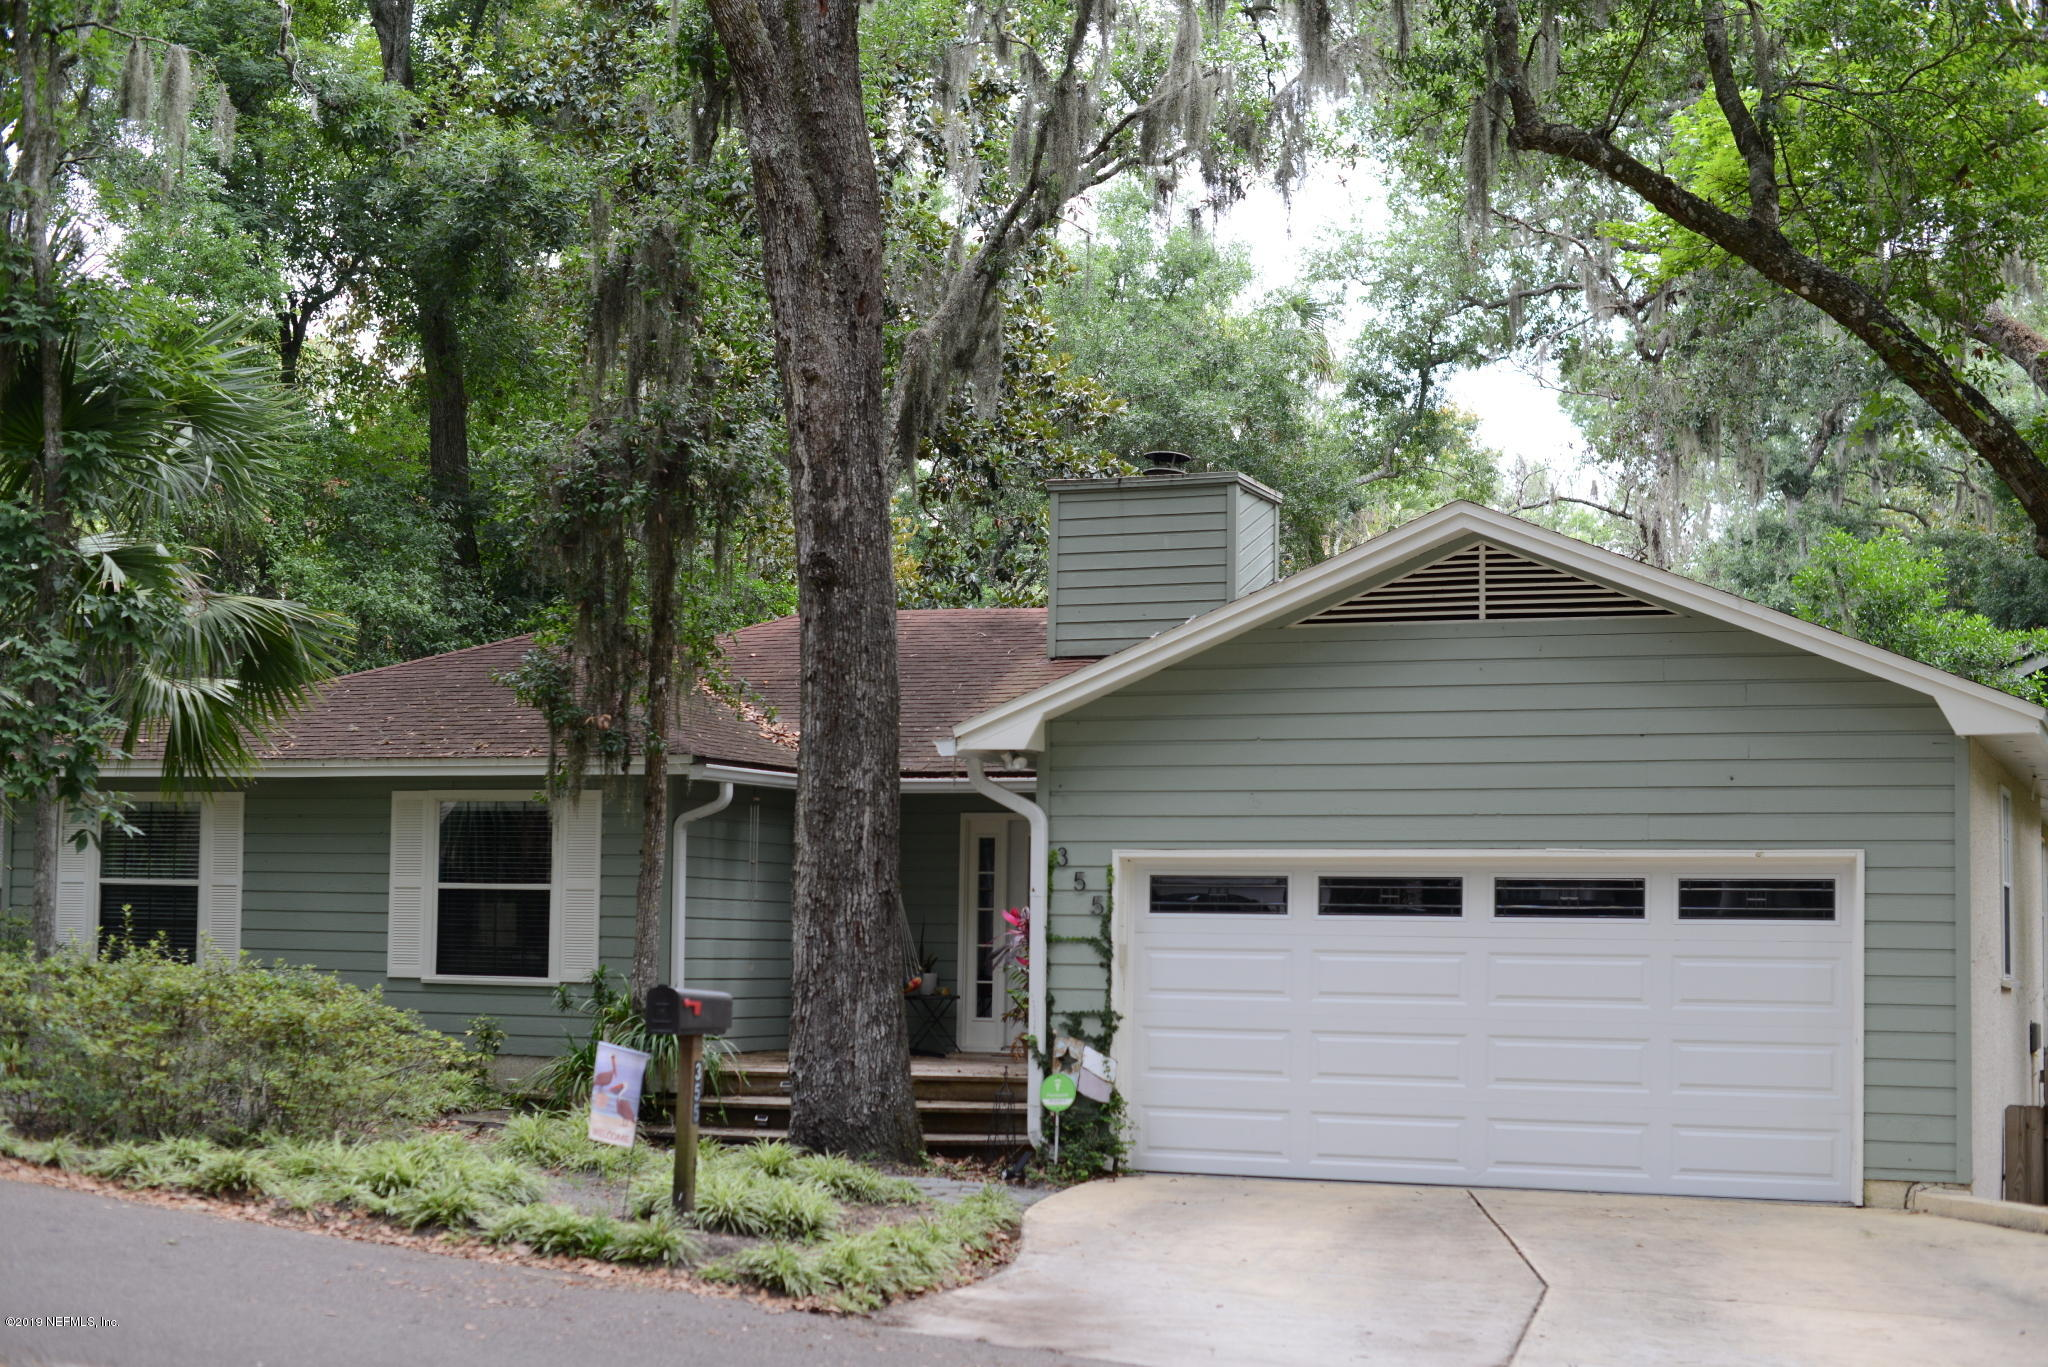 355 19TH, ATLANTIC BEACH, FLORIDA 32233, 3 Bedrooms Bedrooms, ,2 BathroomsBathrooms,Residential - single family,For sale,19TH,1002519